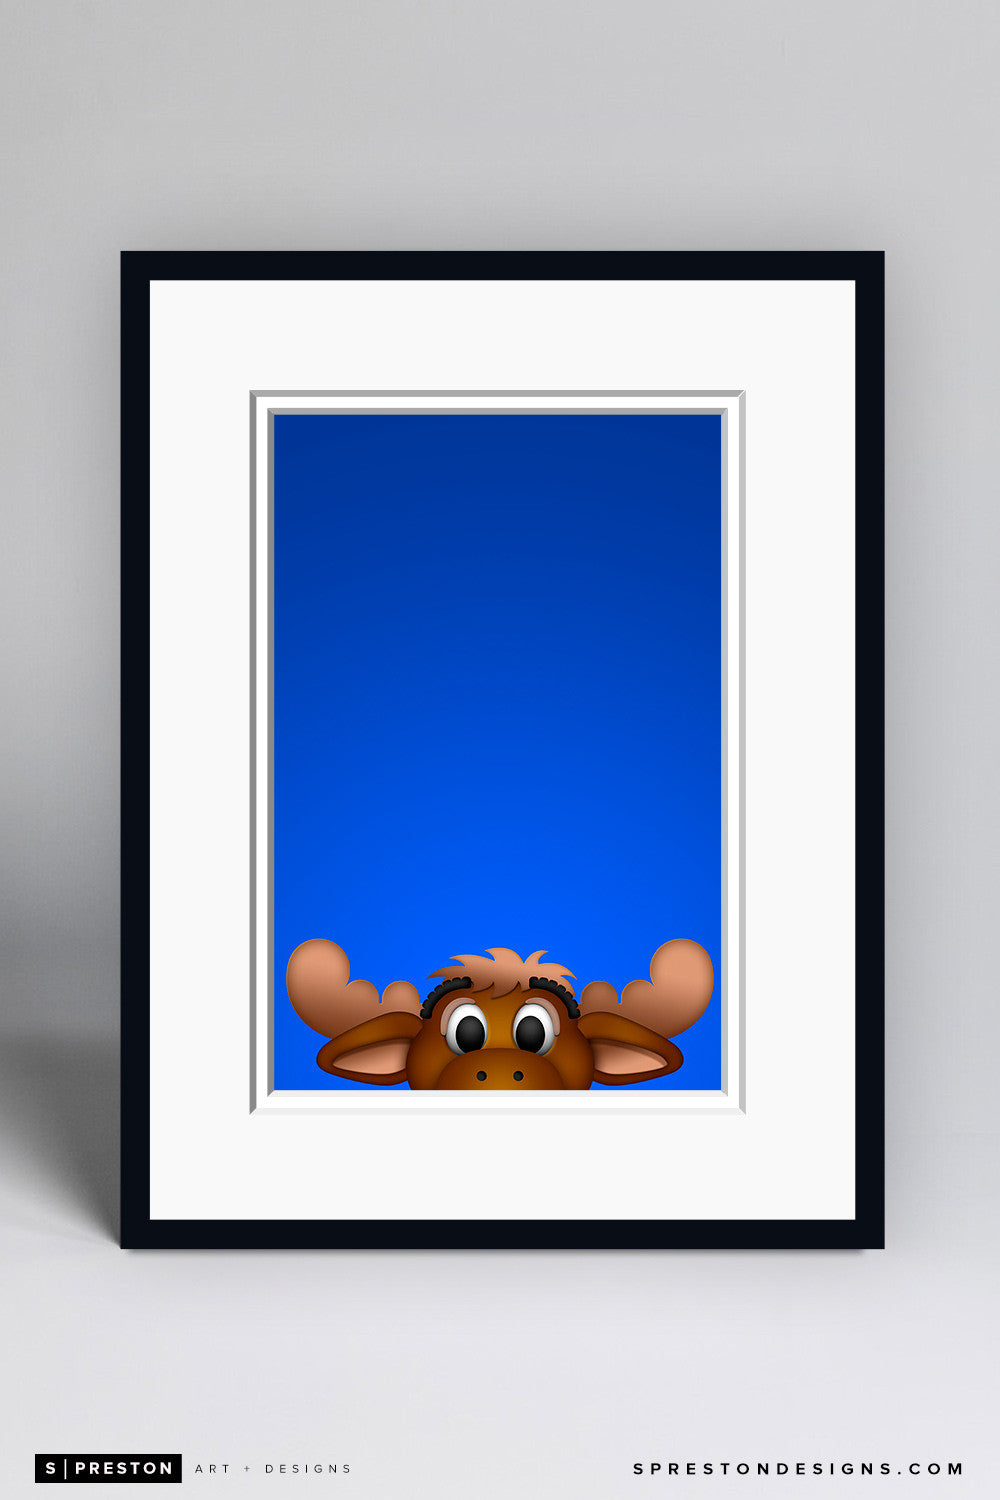 Minimalist Mariner Moose - Seattle Mariners - S. Preston